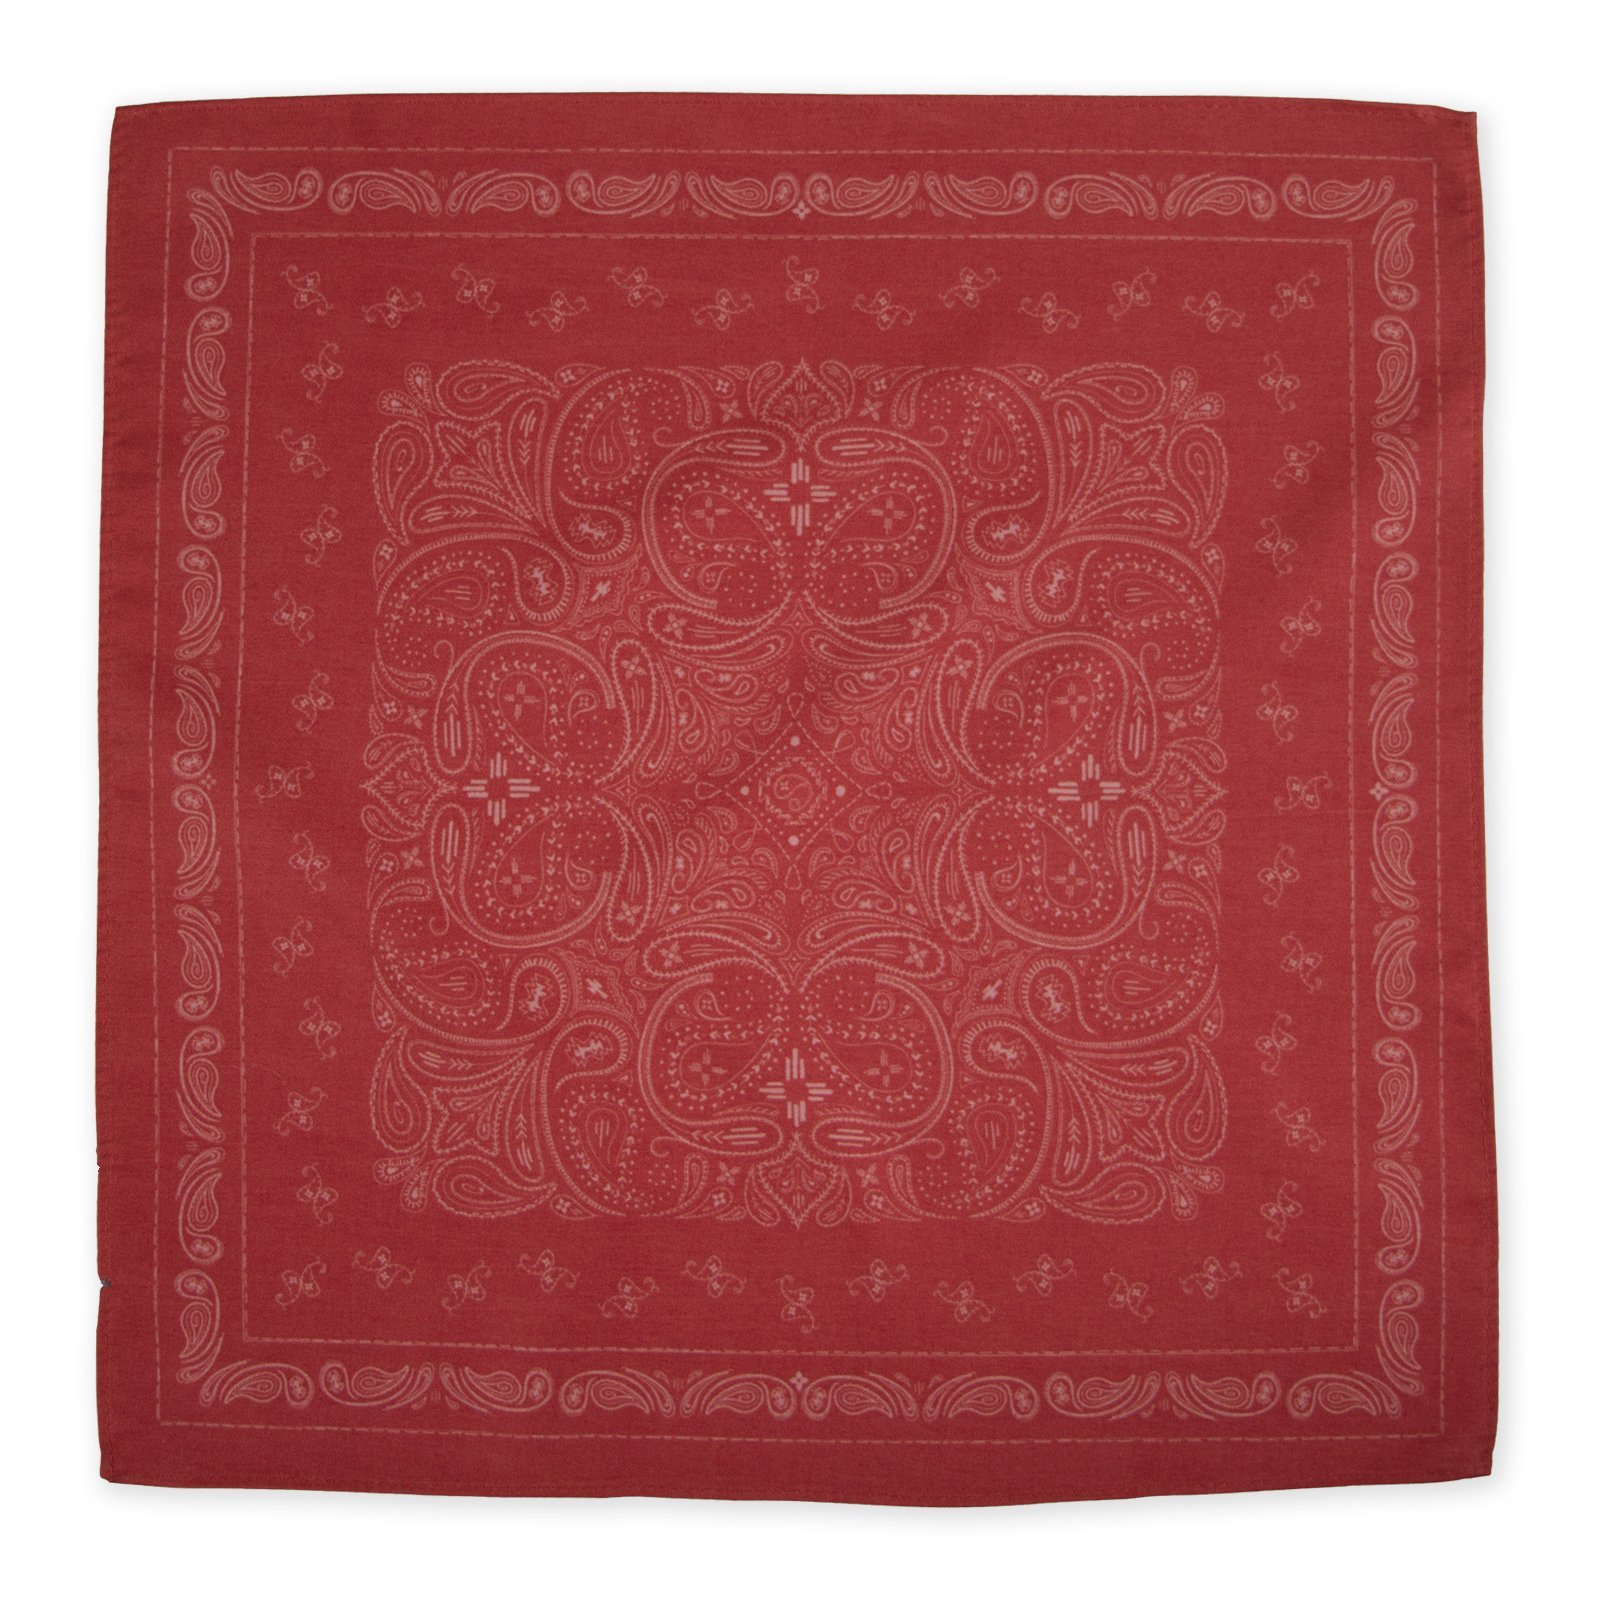 Declan 13.4 Inch Microfiber Pocket Square, Handkerchief, Cleaning Cloth (Brooks Red)